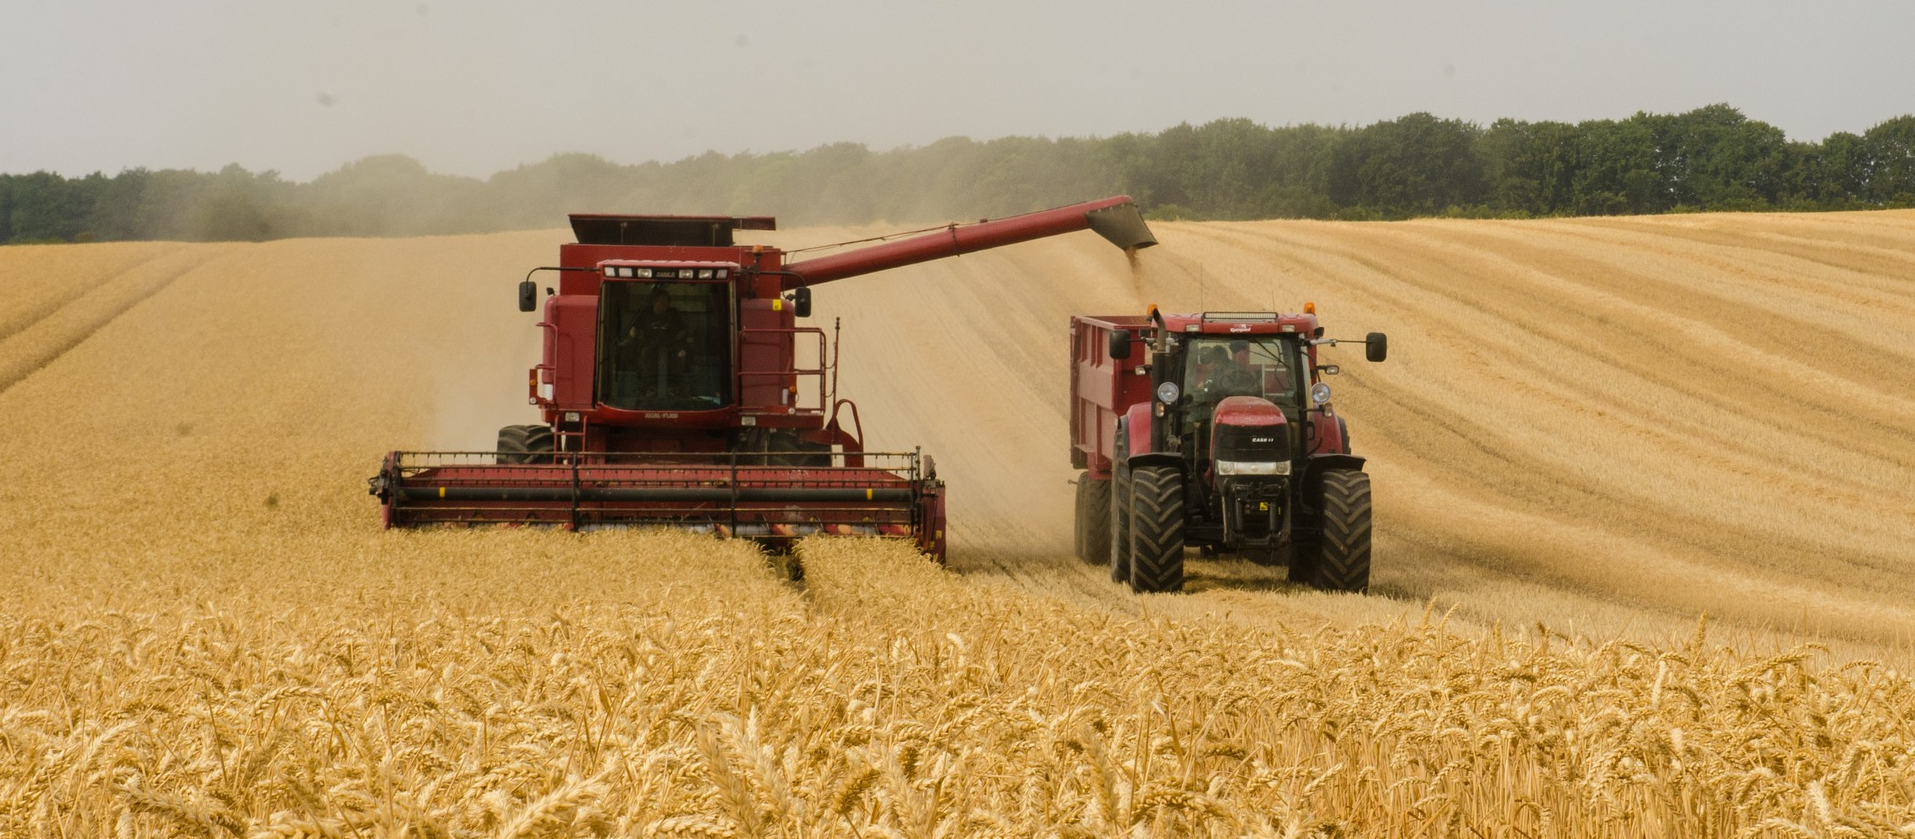 Combine and tractor harvesting wheat.